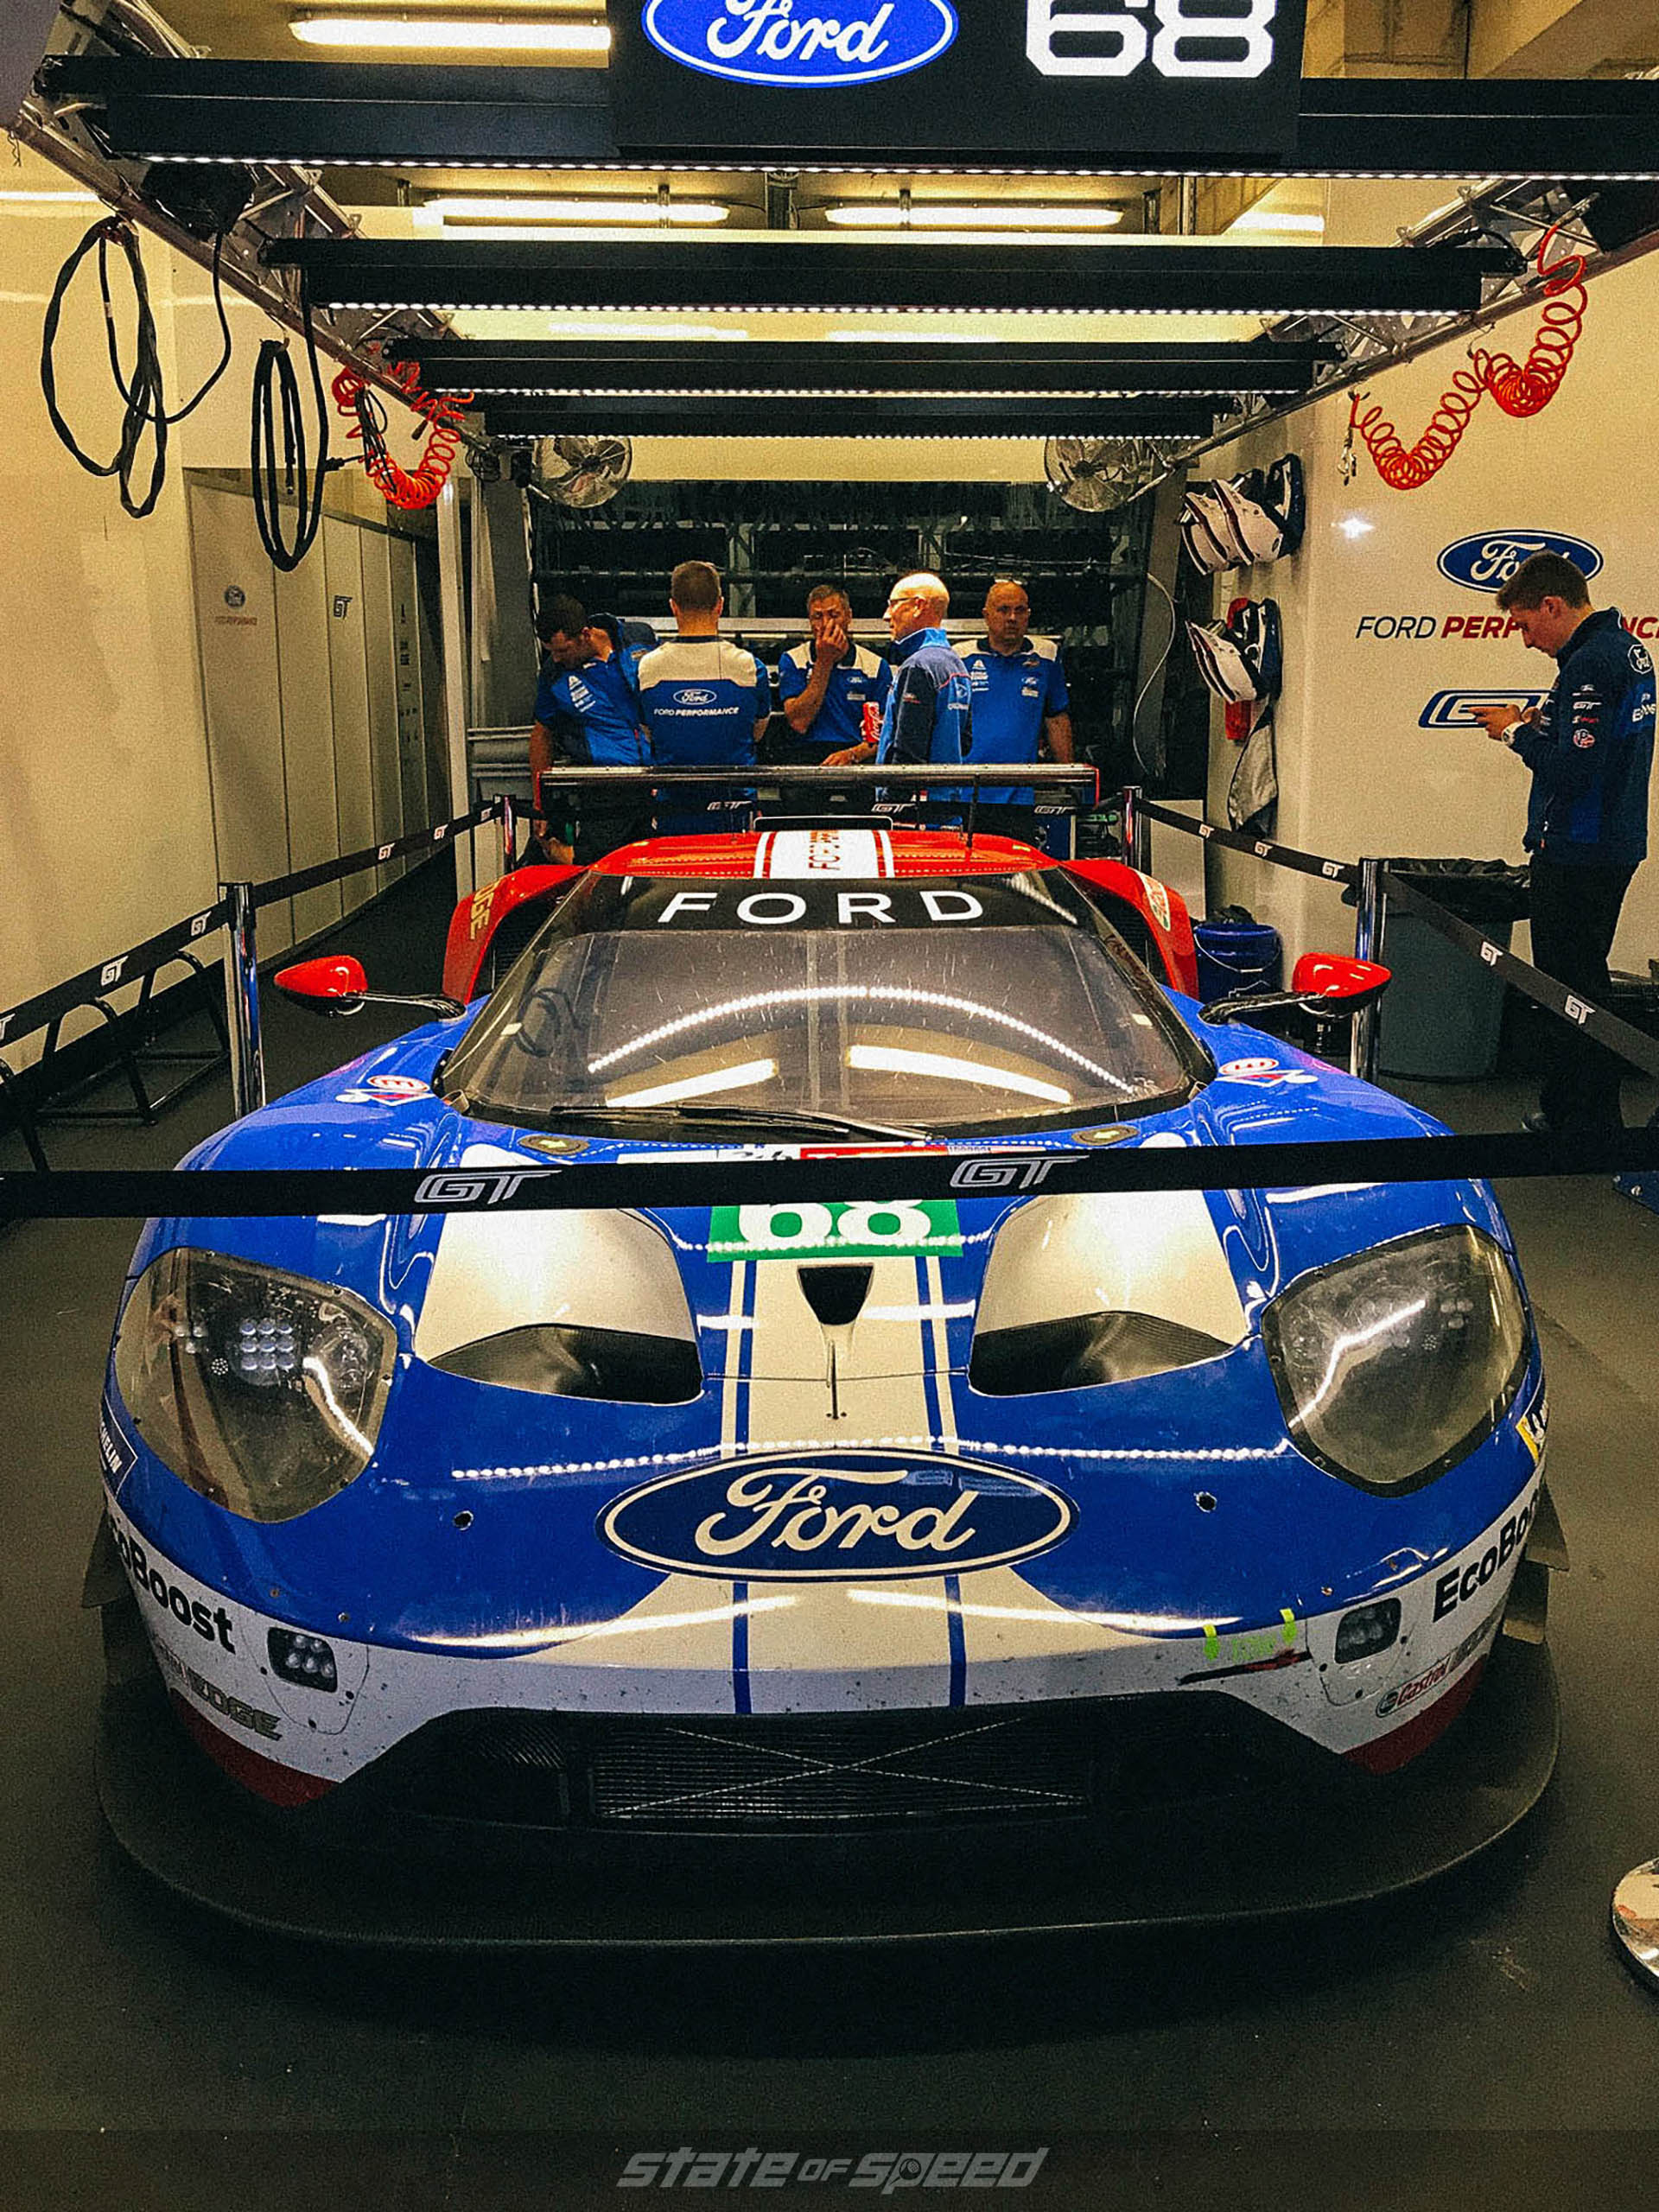 Ford Racing Team at Le Mans